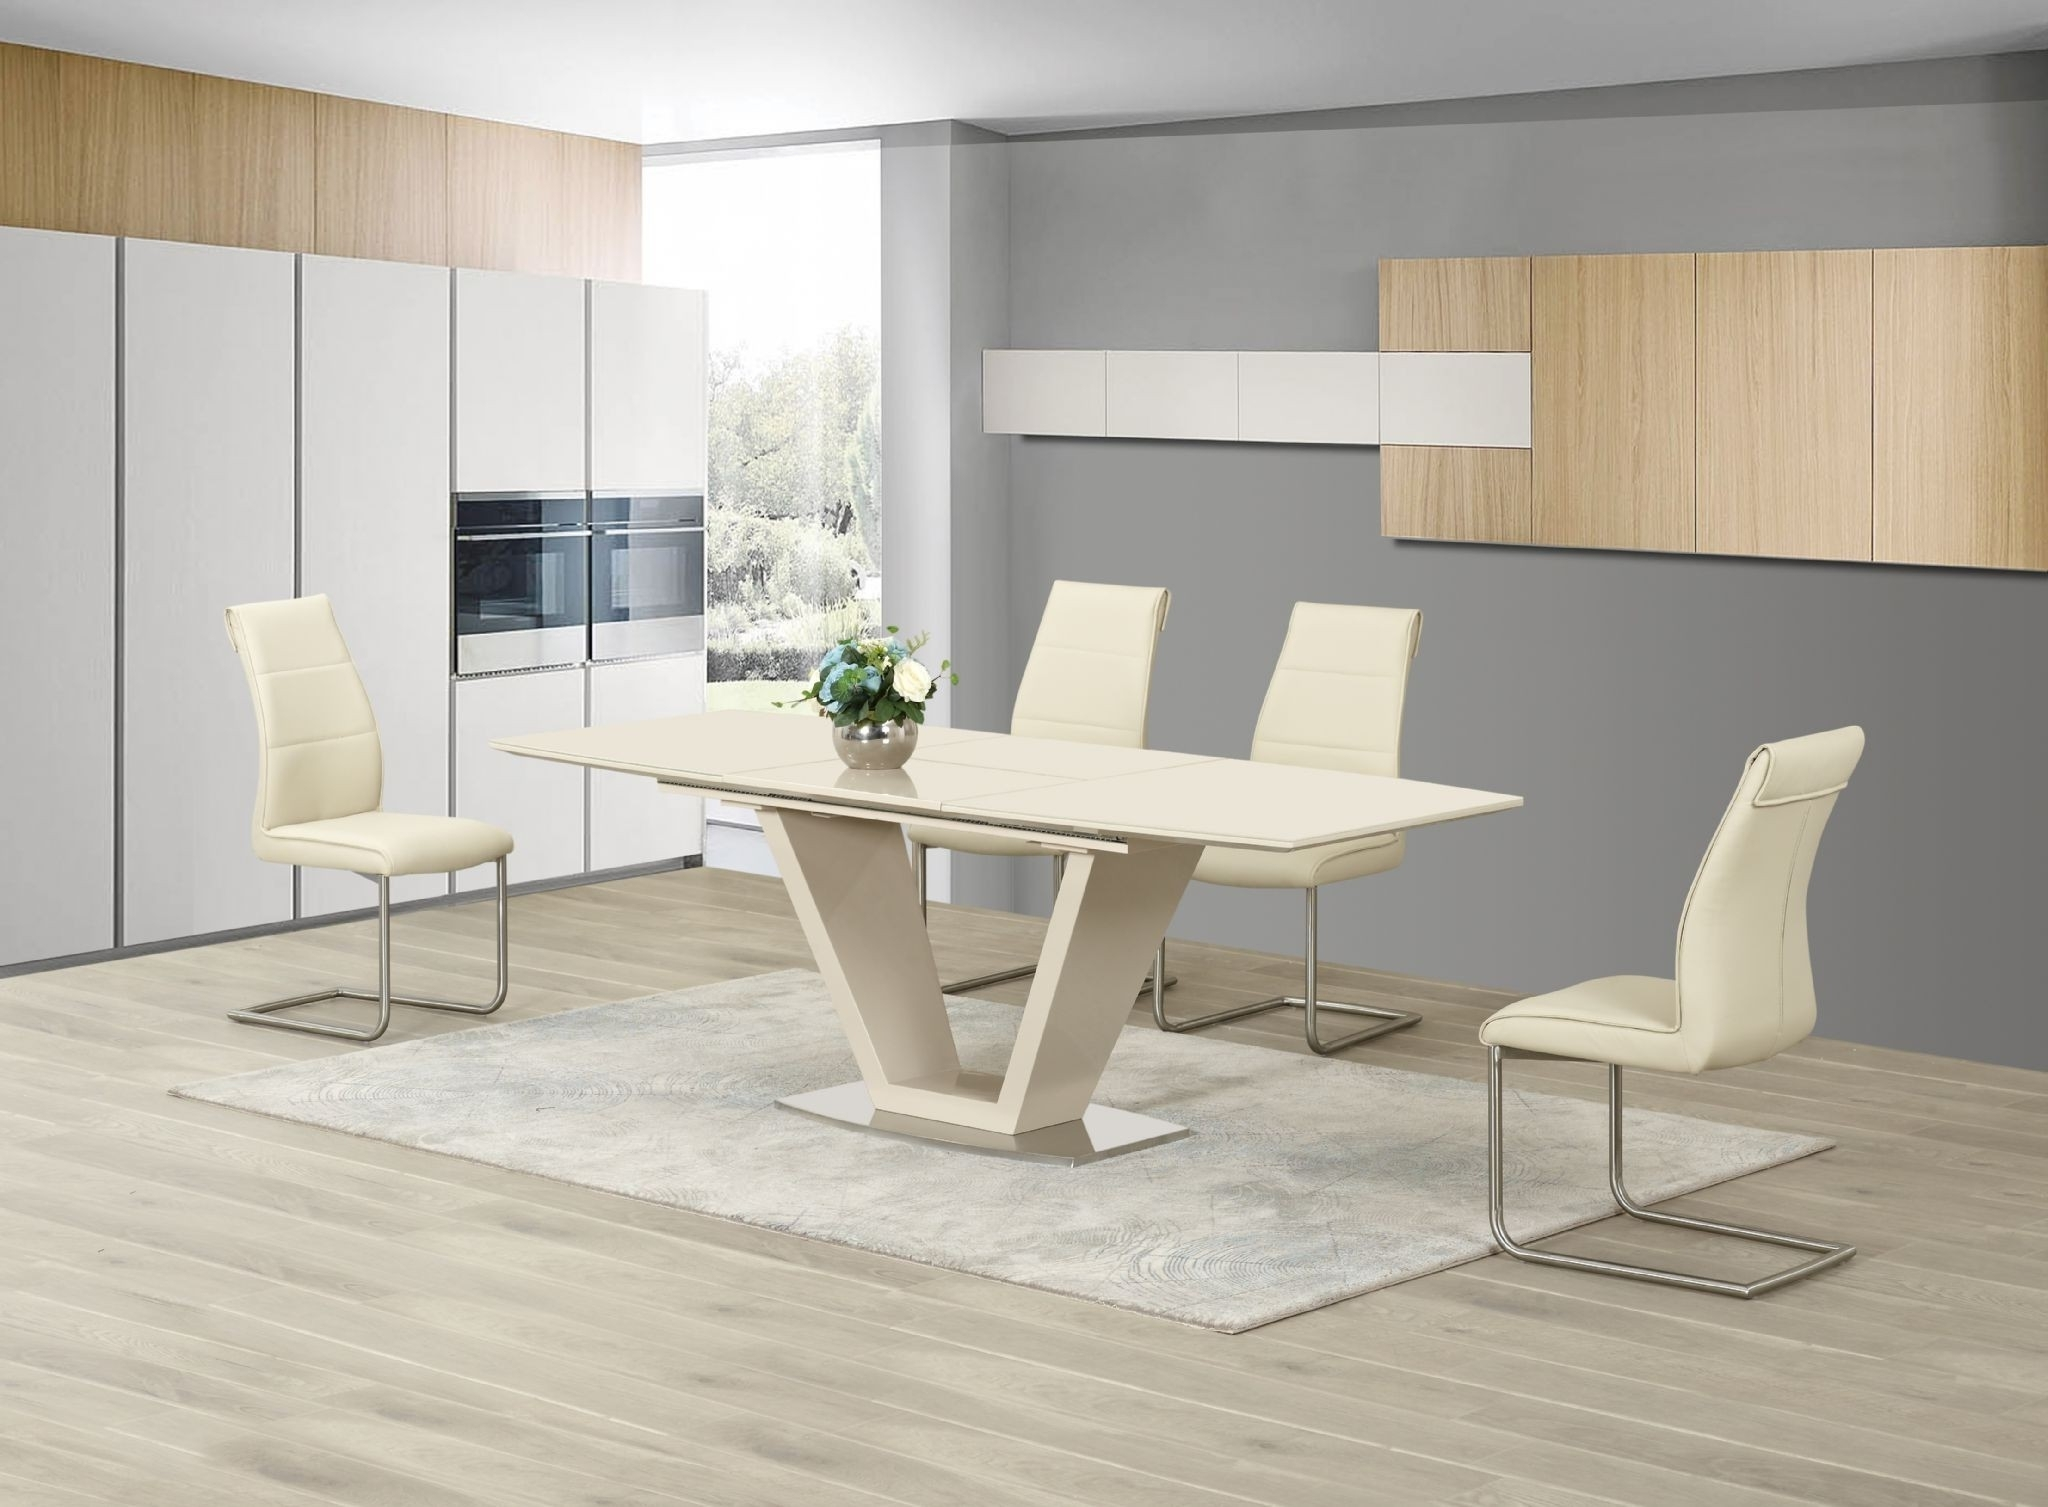 Floris Cream Gloss Extending Dining Table 160 220Cm With Regard To 2017 Cream And Wood Dining Tables (View 2 of 25)